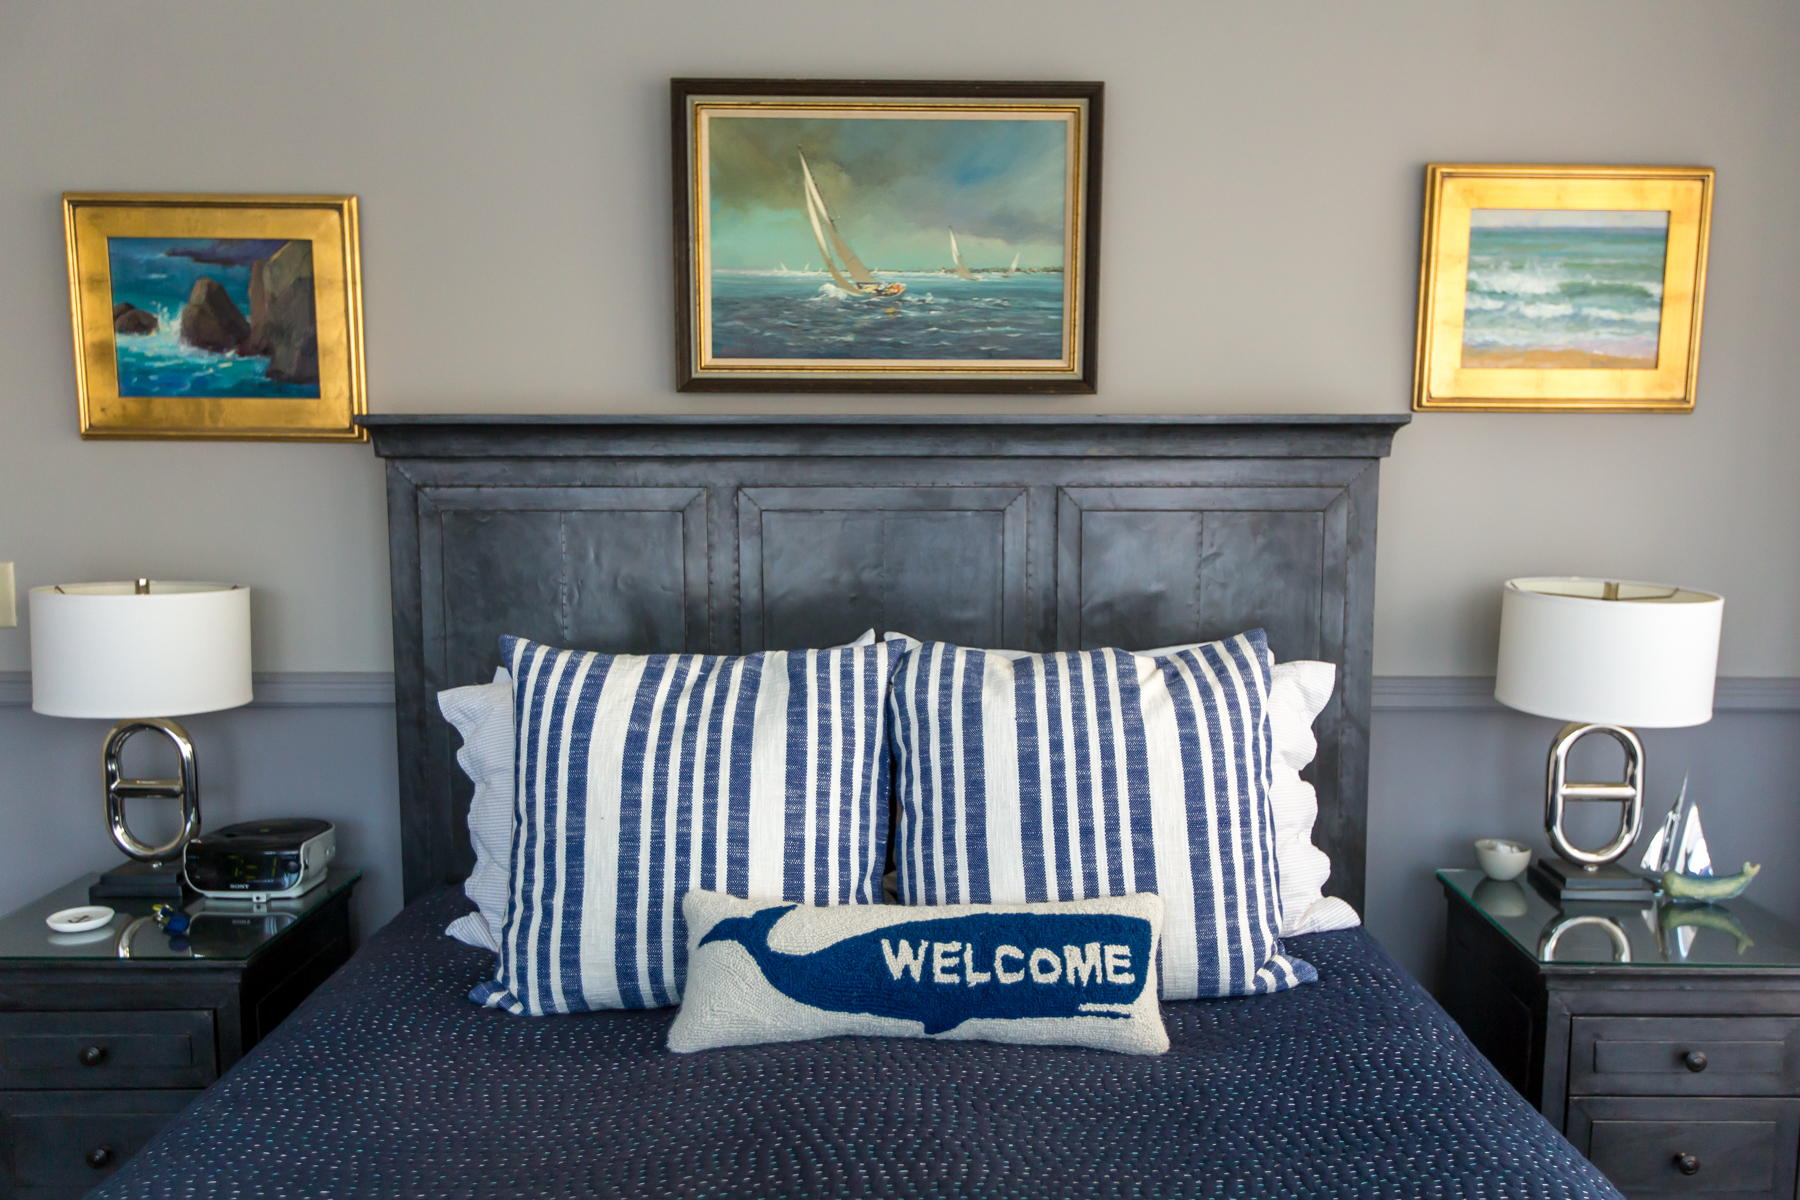 Guest Room at Nantucket Whale Inn - Photo by Garrick Ramirez